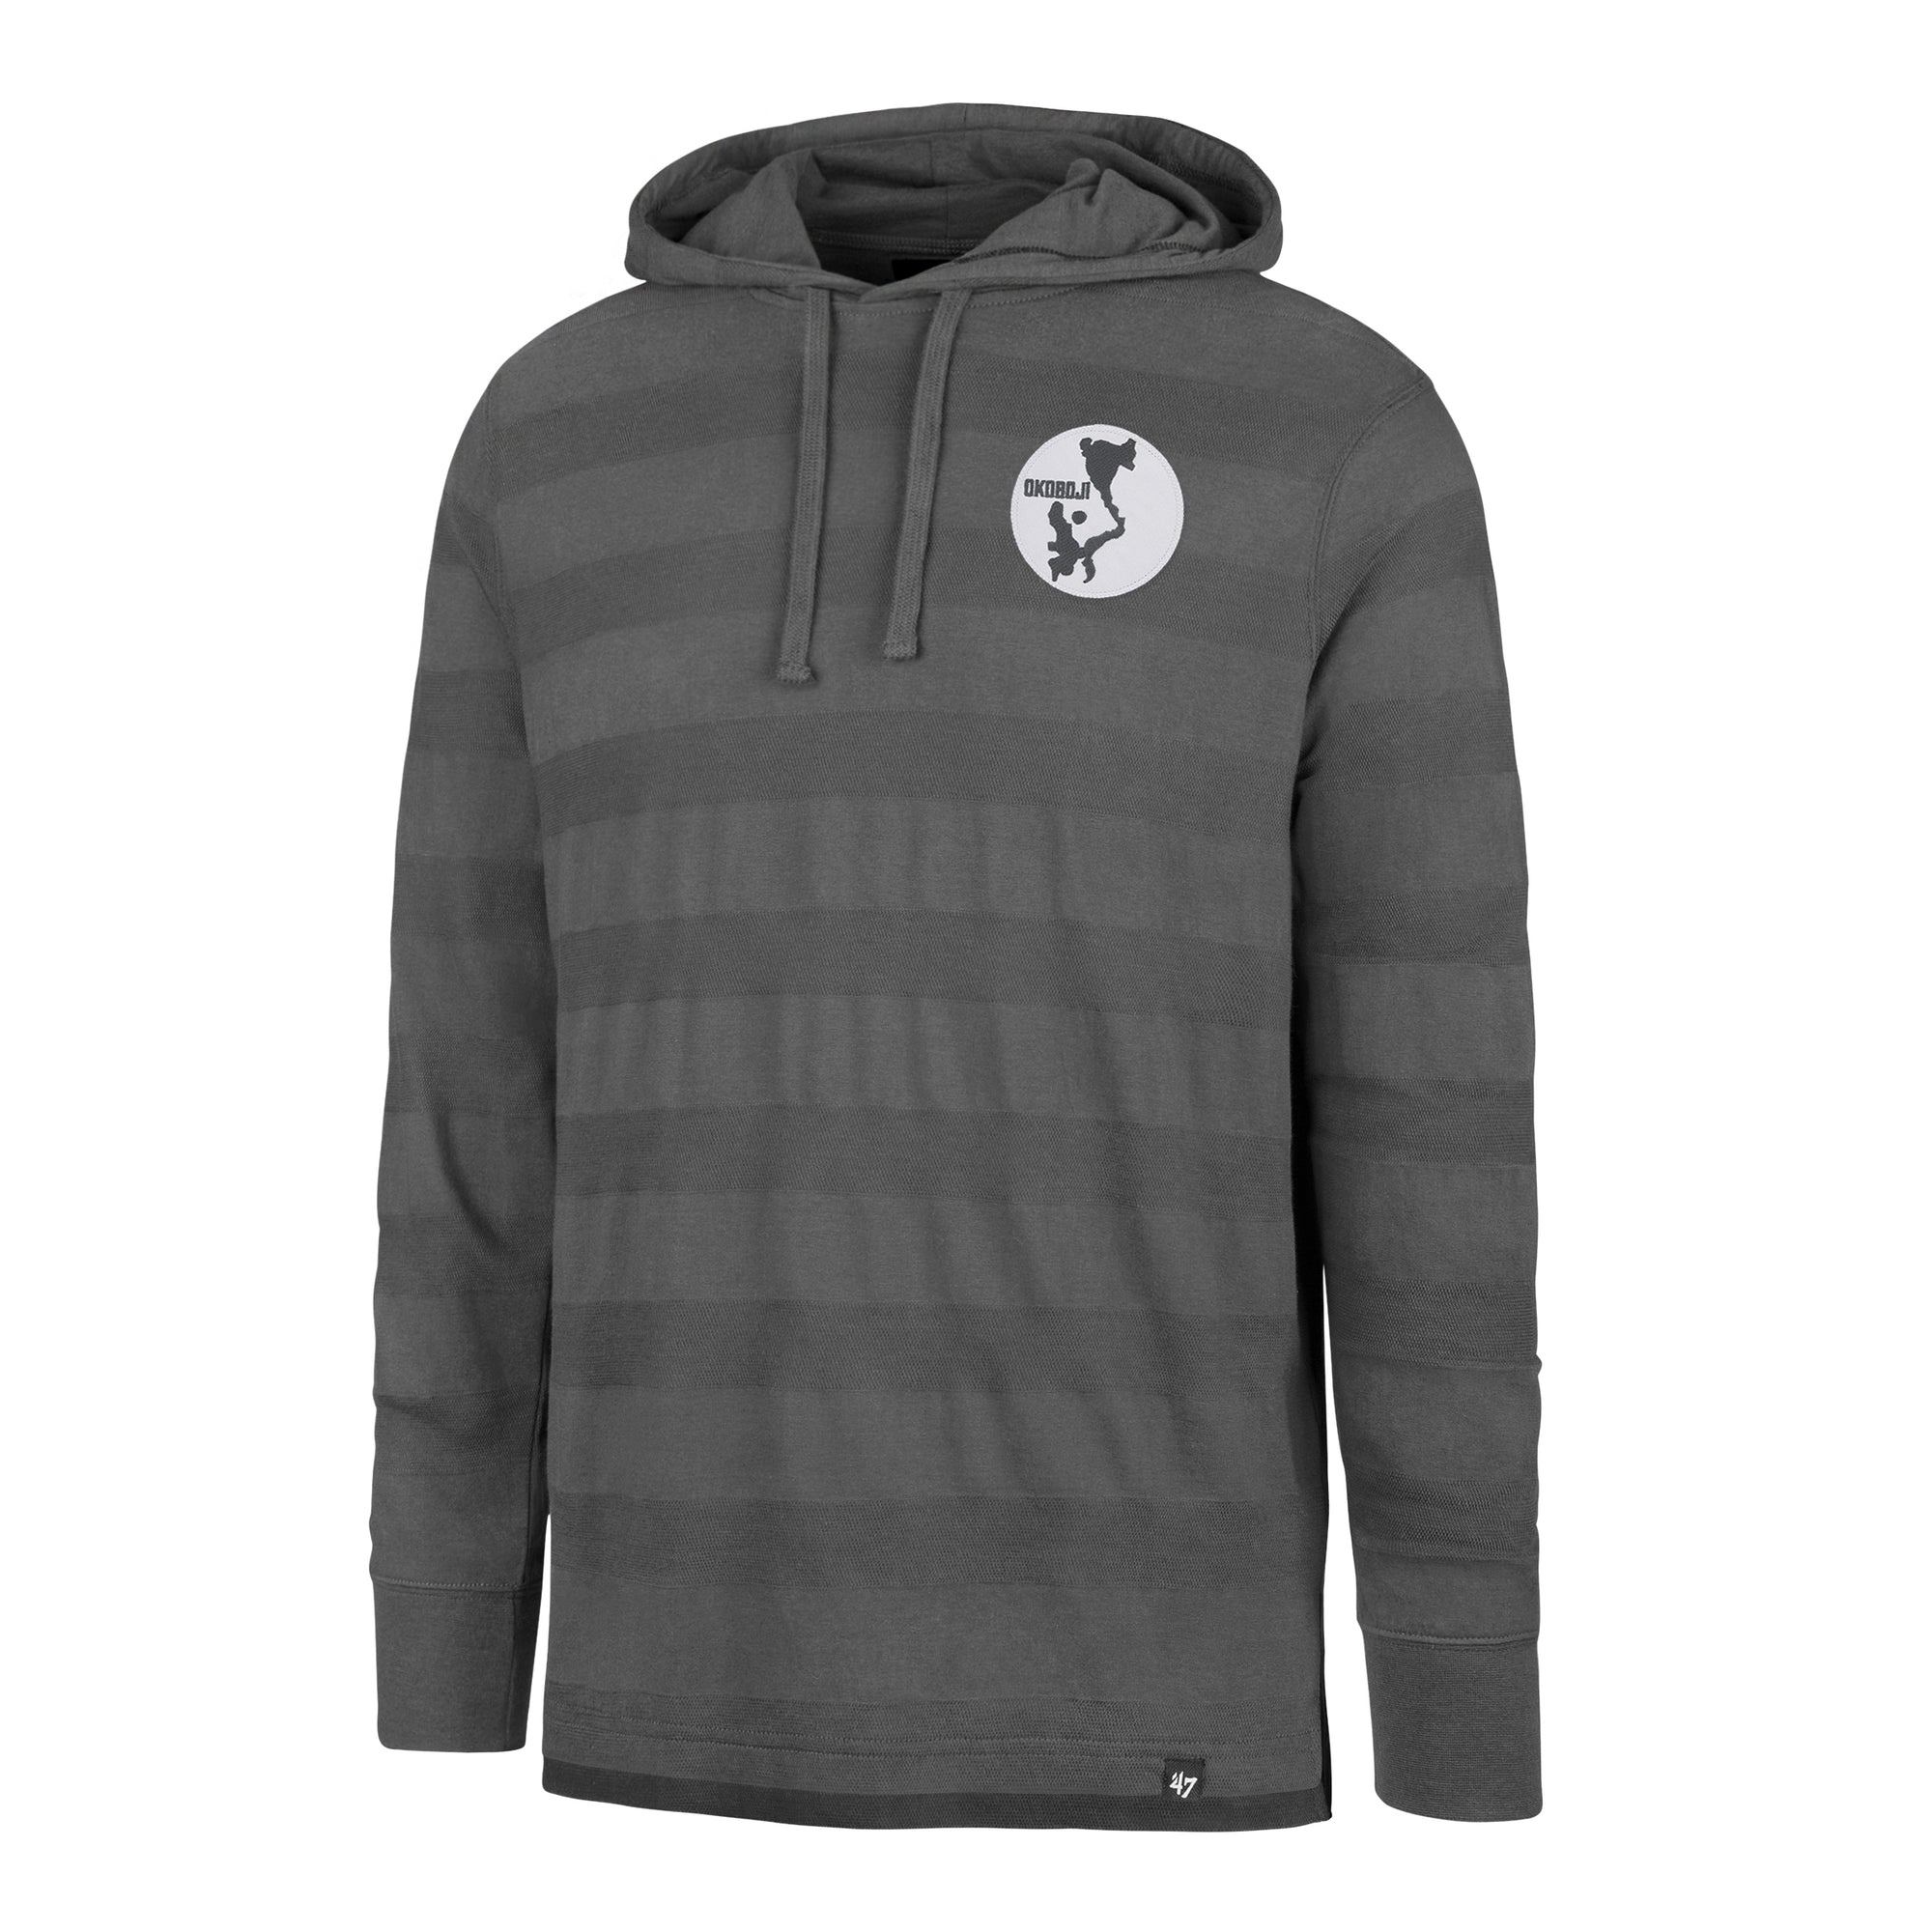 Okoboji Stripe Pique '47 Tee Hood - Charcoal / Dark Grey